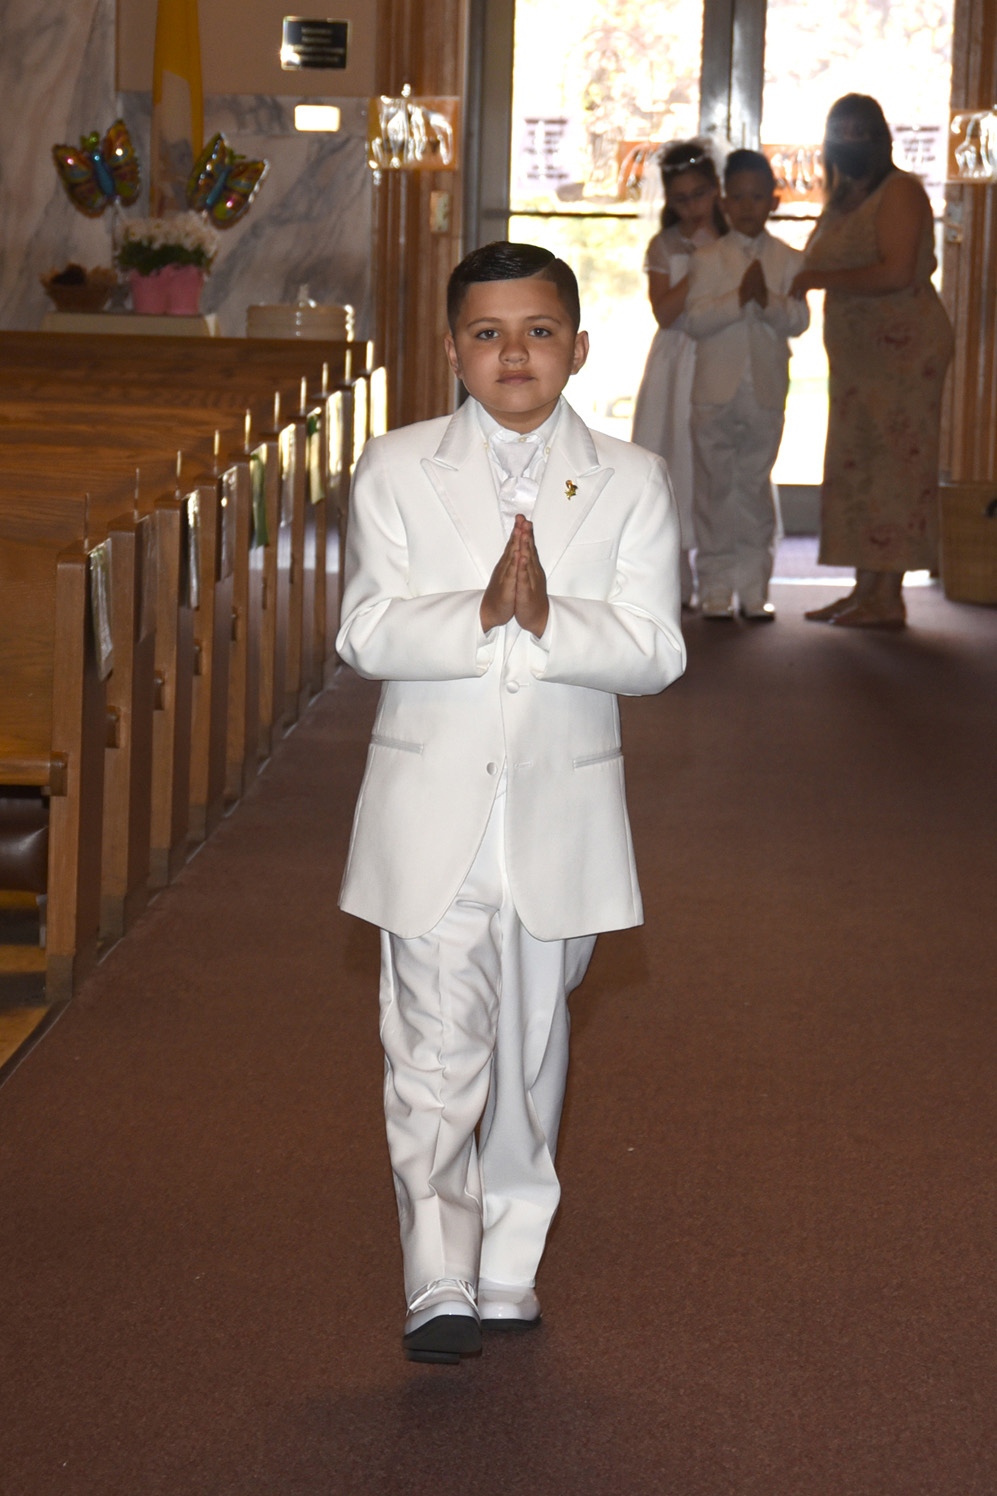 FIRST-COMMUNION-MAY-16-2021-173